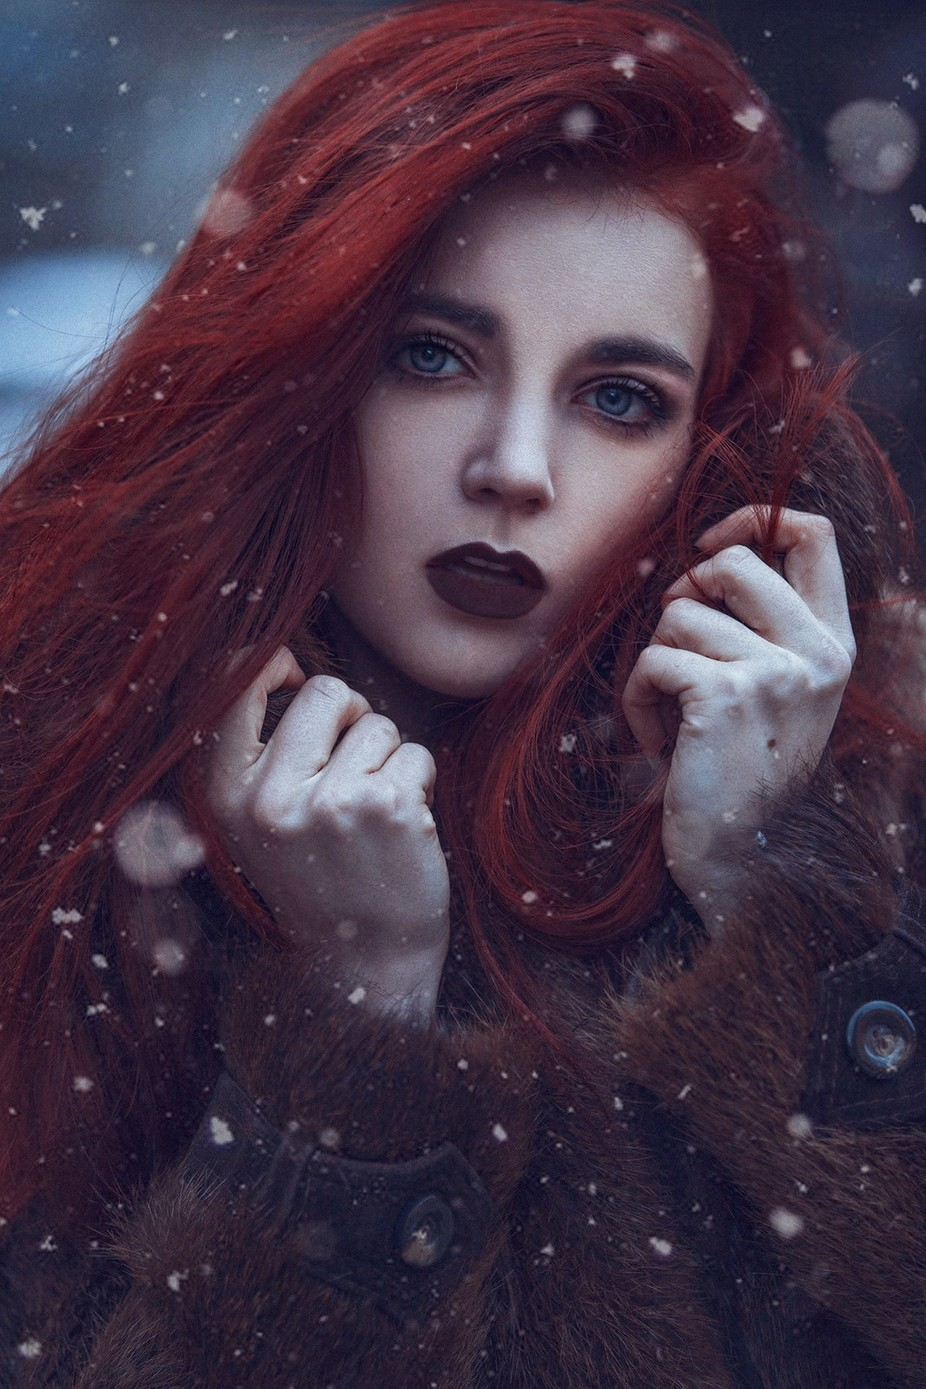 Fire and Snow by gracealmera - Red Hair Photo Contest